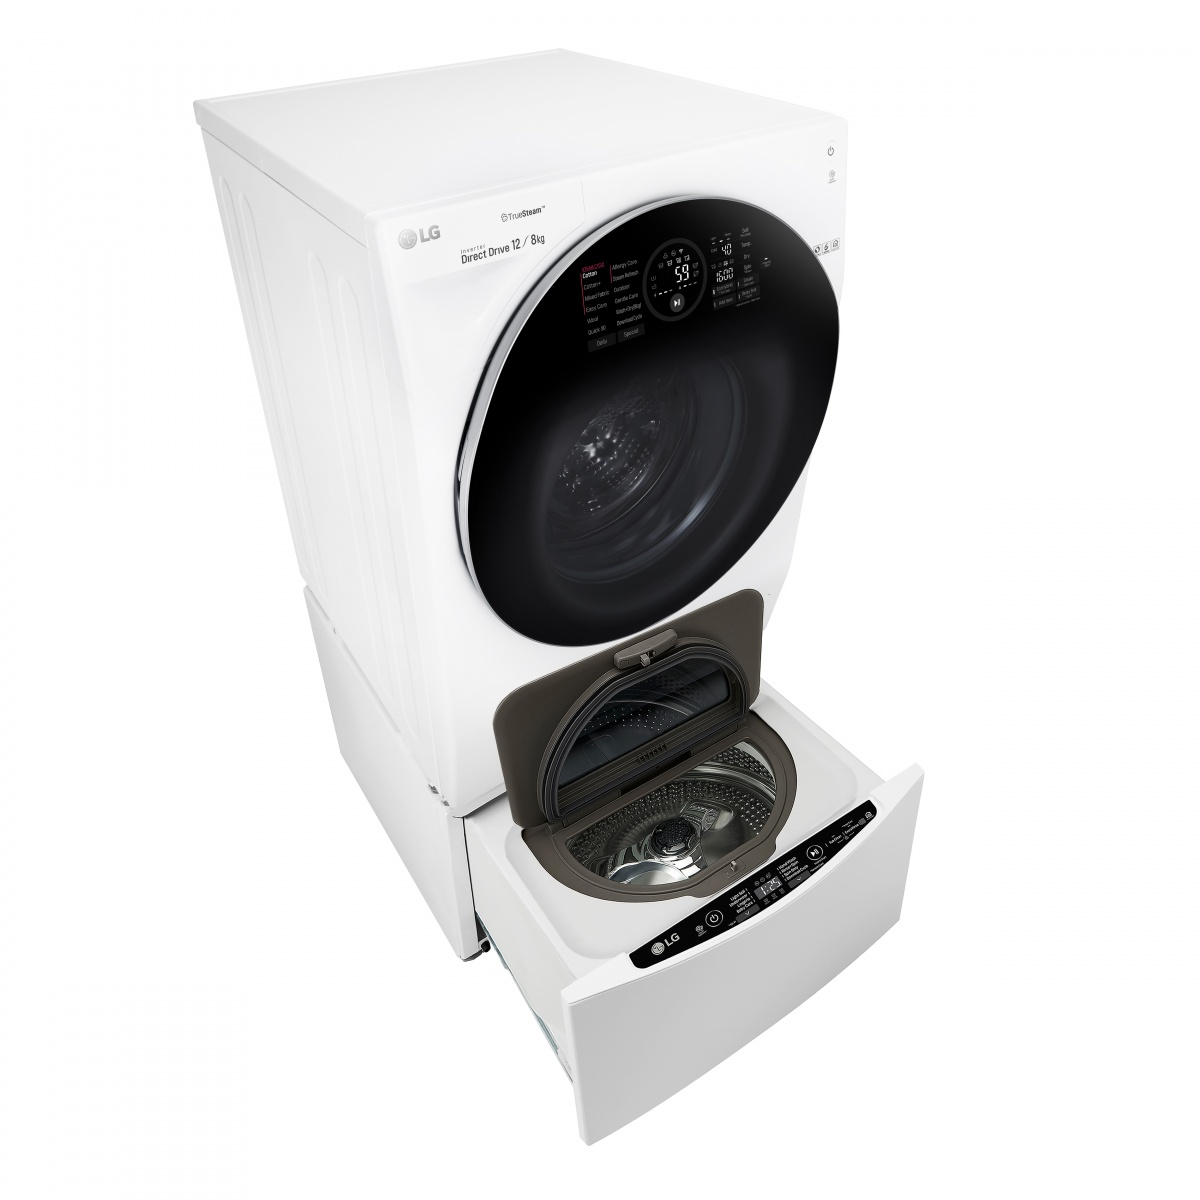 https://www.emag.ro/masina-de-spalat-cu-uscator-lg-12kg-spalare-8kg-uscare-miniwash-2kg-ecohybrid-truesteam-smart-wifi-led-touch-control-direct-drive-clasa-a-alb-f6wd148twin/pd/DLXHC9BBM/?X-Search-Id